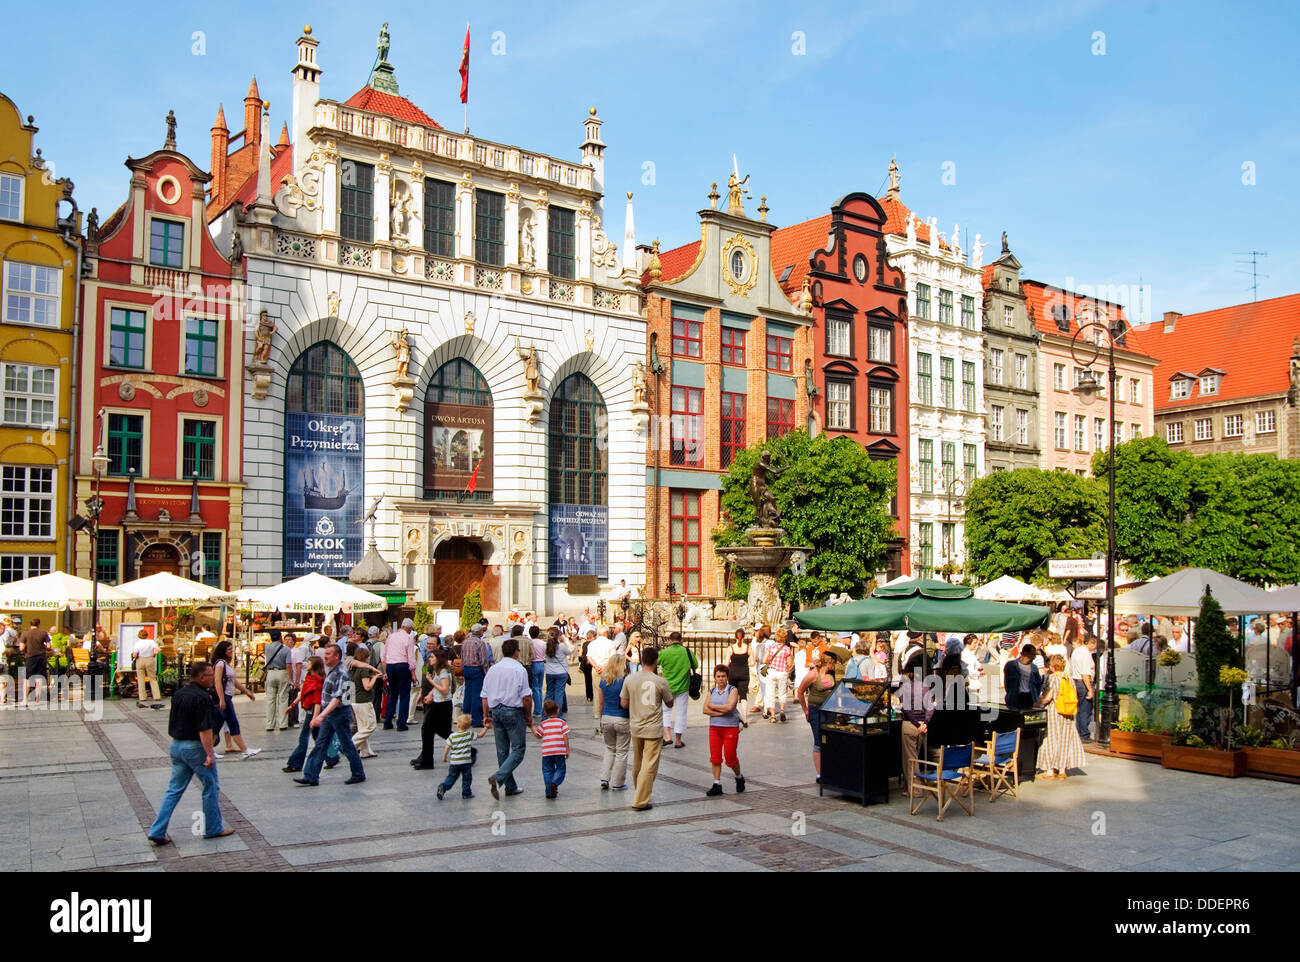 Tourists and Locals shopping and sightseeing in the historical old town at the port city of Danzig in Poland. Stock Photo